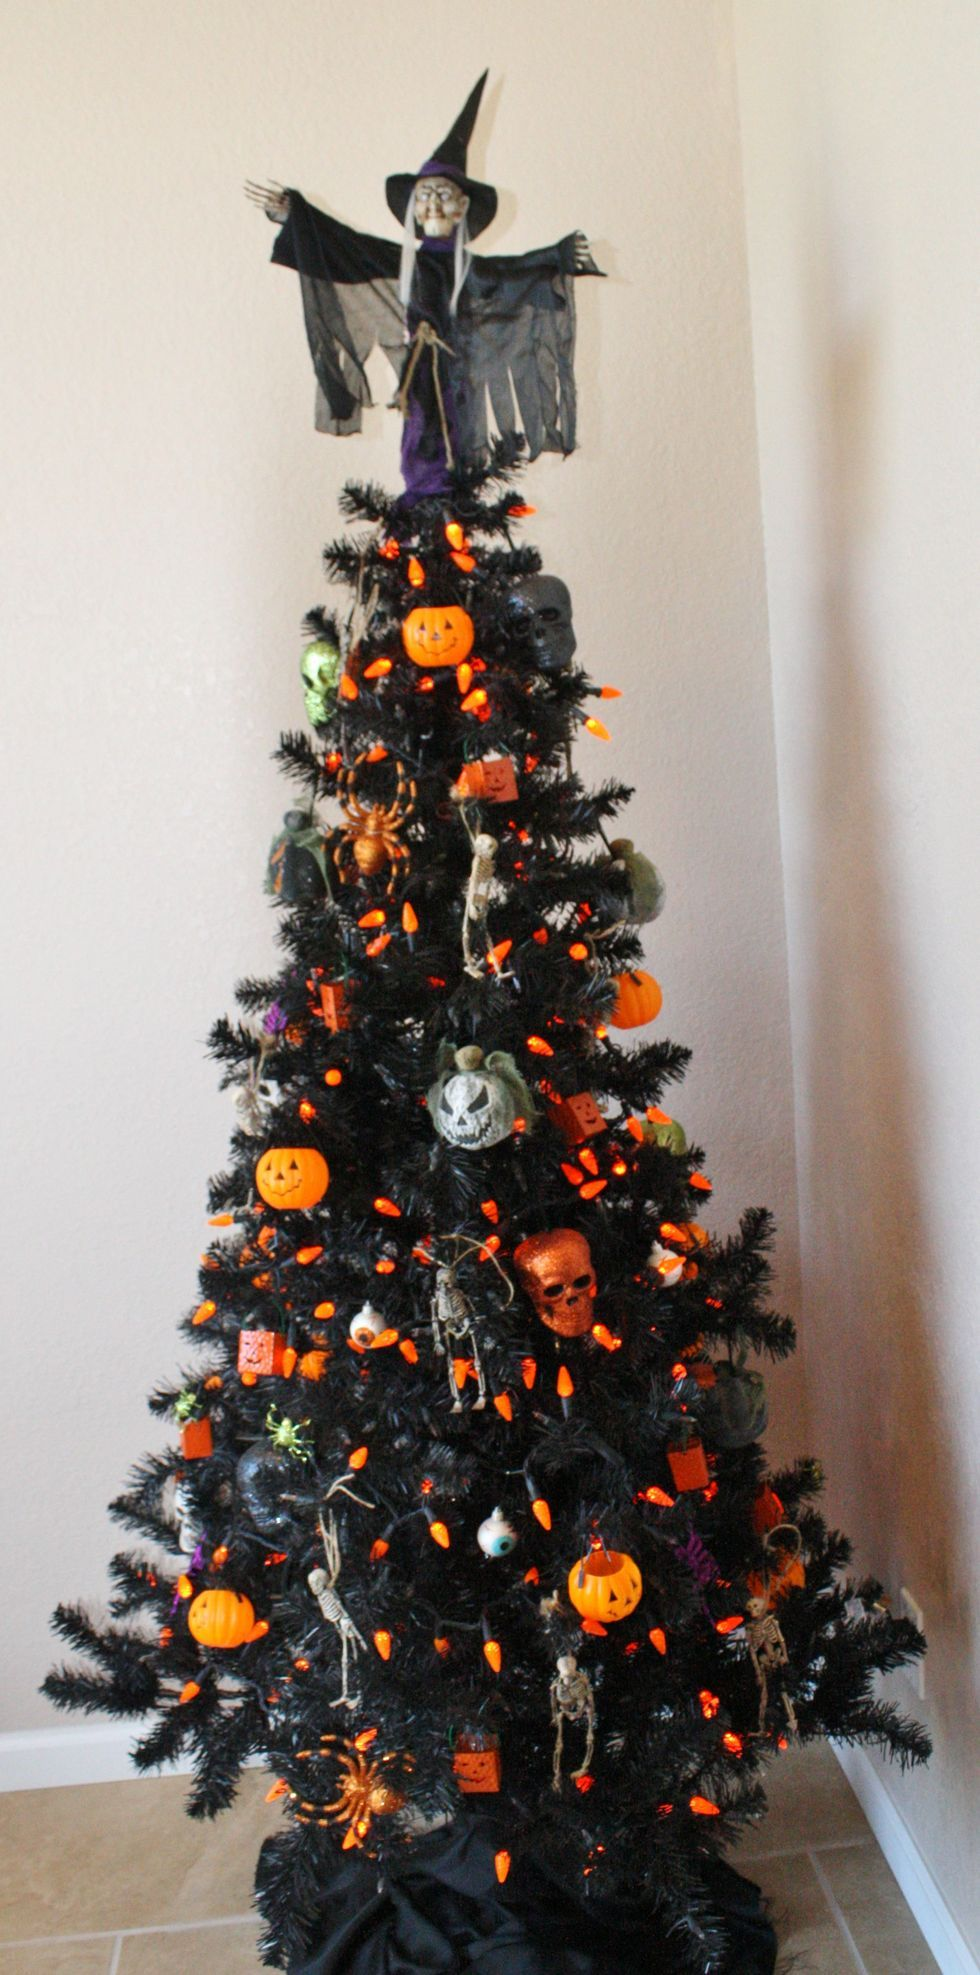 Put Up Your Christmas Tree Two Months Before December, Only